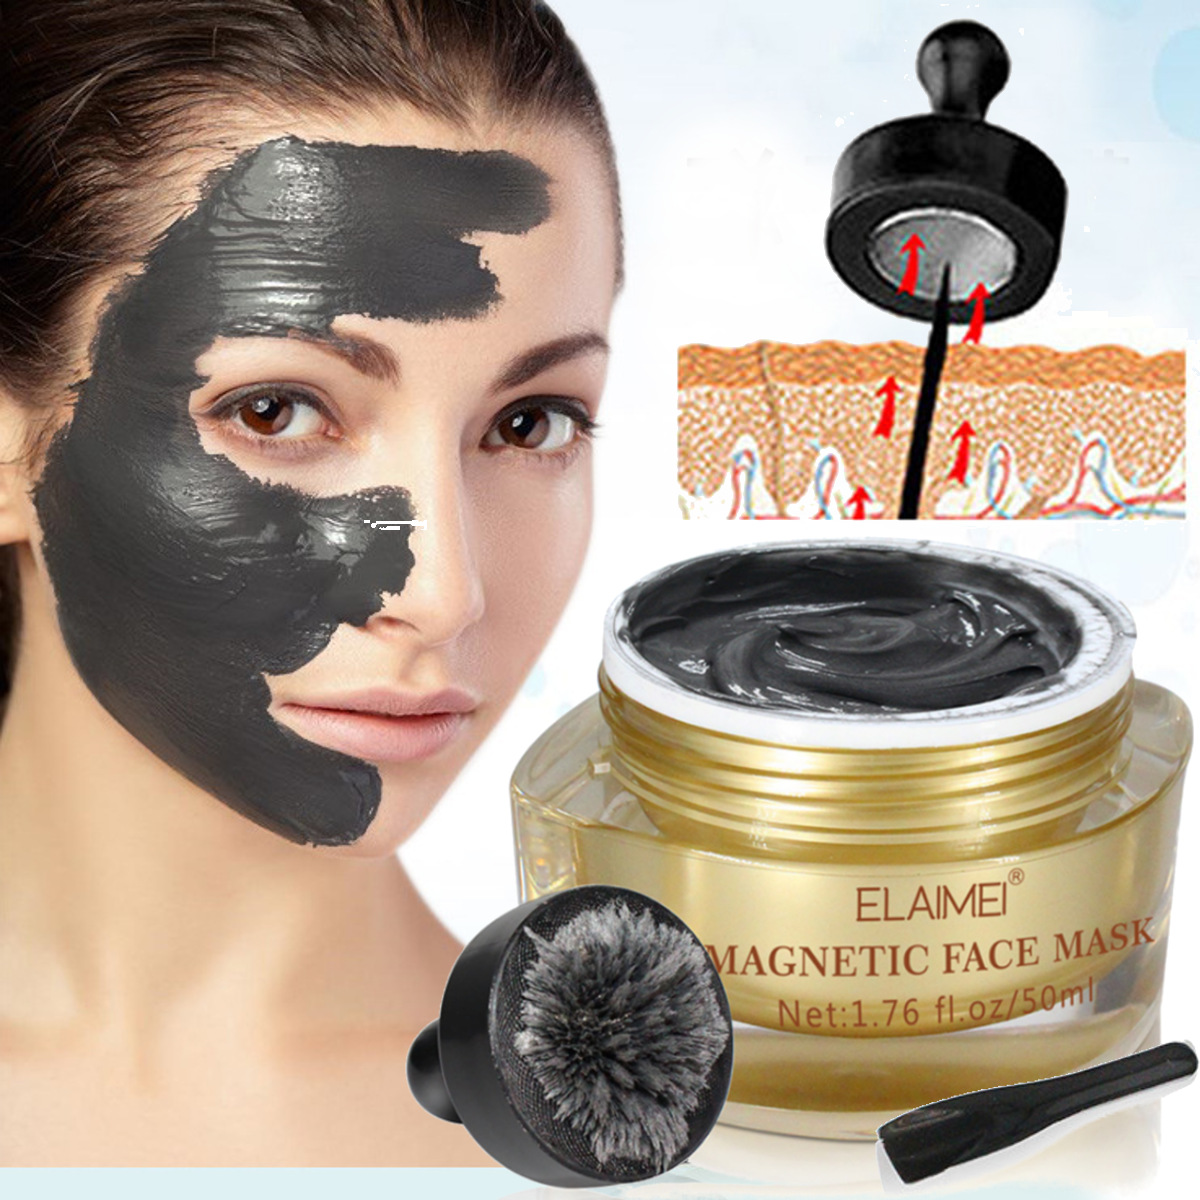 ELAIMEI Magnetic Face Mask Pore Cleansing